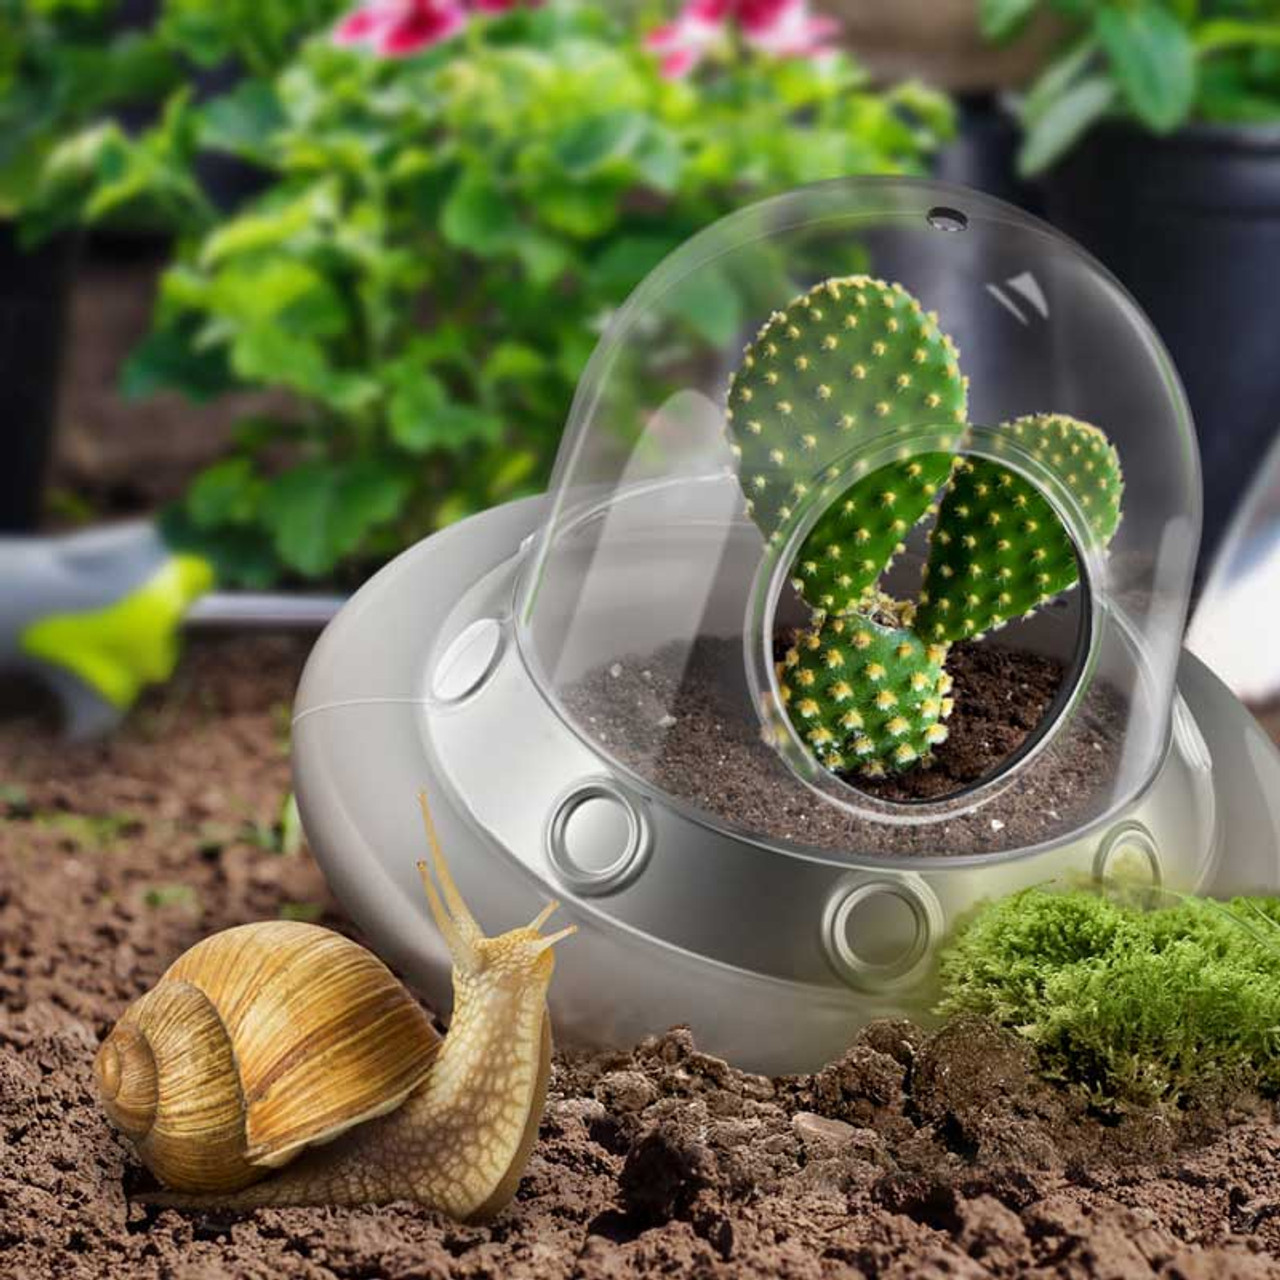 Purchase UFO Space Invader Air Planter